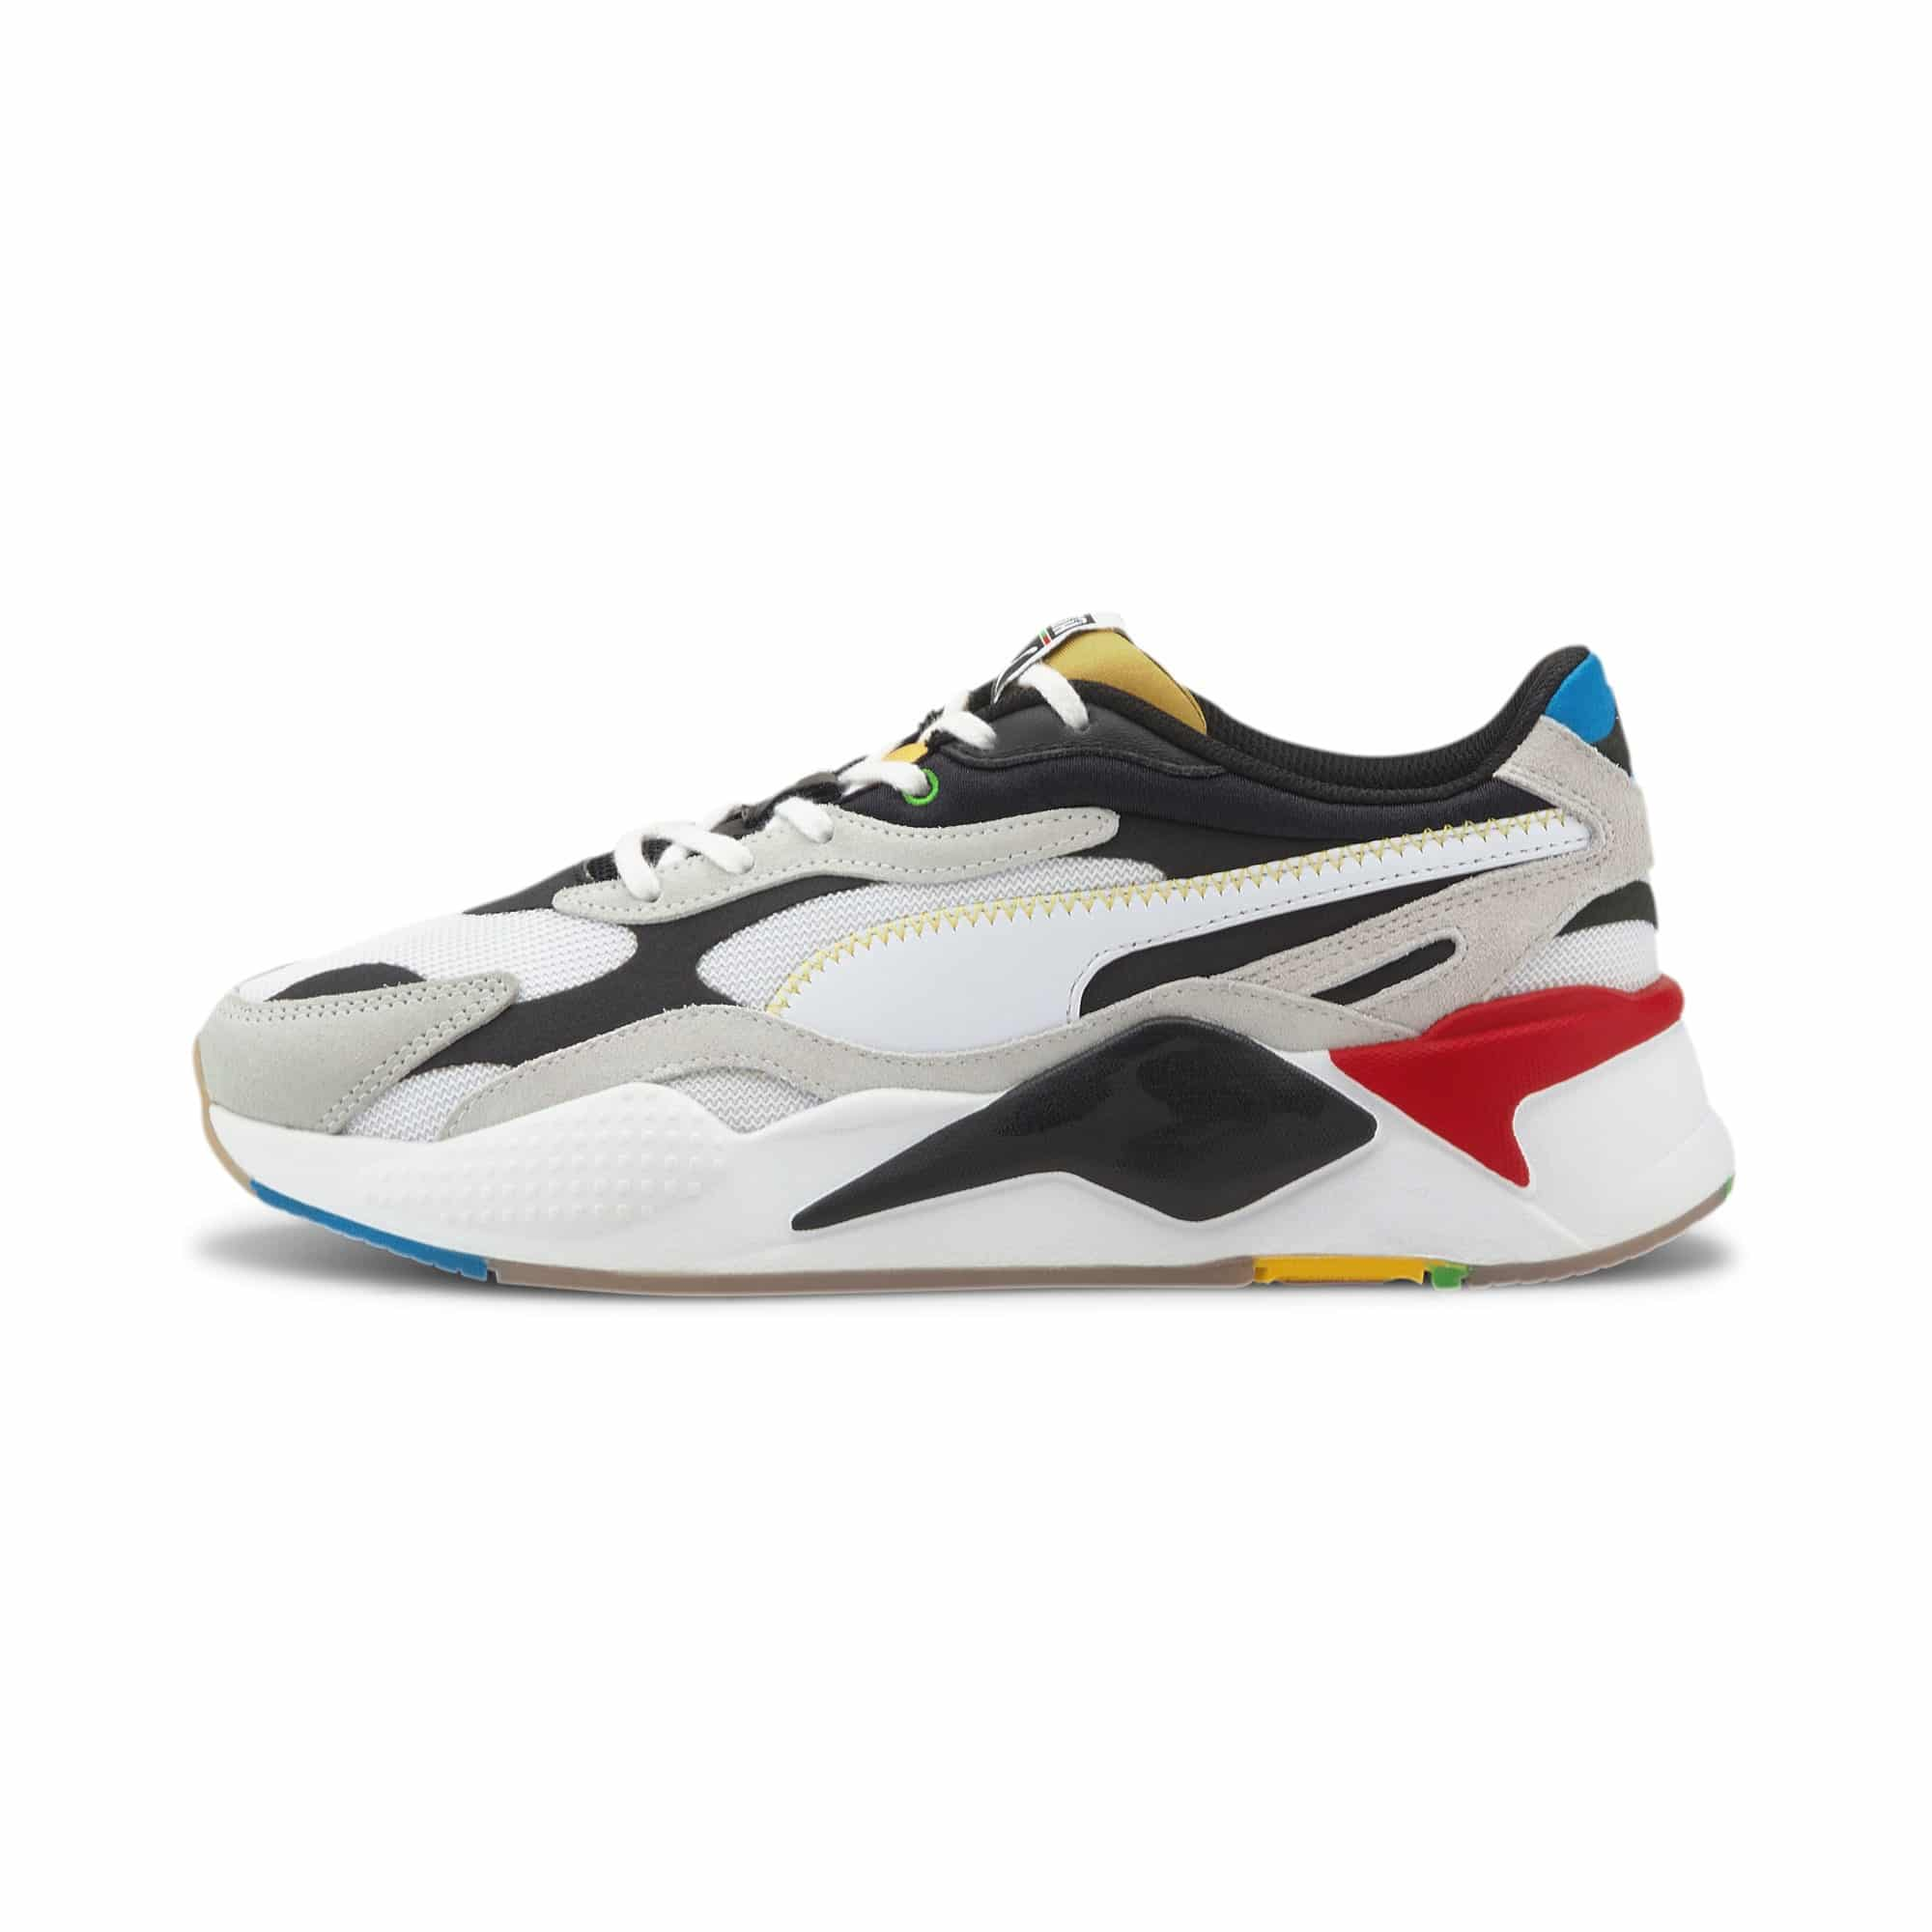 PUMA SNEAKERS RS-X THE UNITY COLLECTION SCARPA UOMO DONNA MULTICOLOR OFF BIANCO NERA ROSSA GIALLA WHITE BLACK YELLOW RED ARTICOLO 373308 01 TAGLIA SIZE 40 41 42 43 44 45